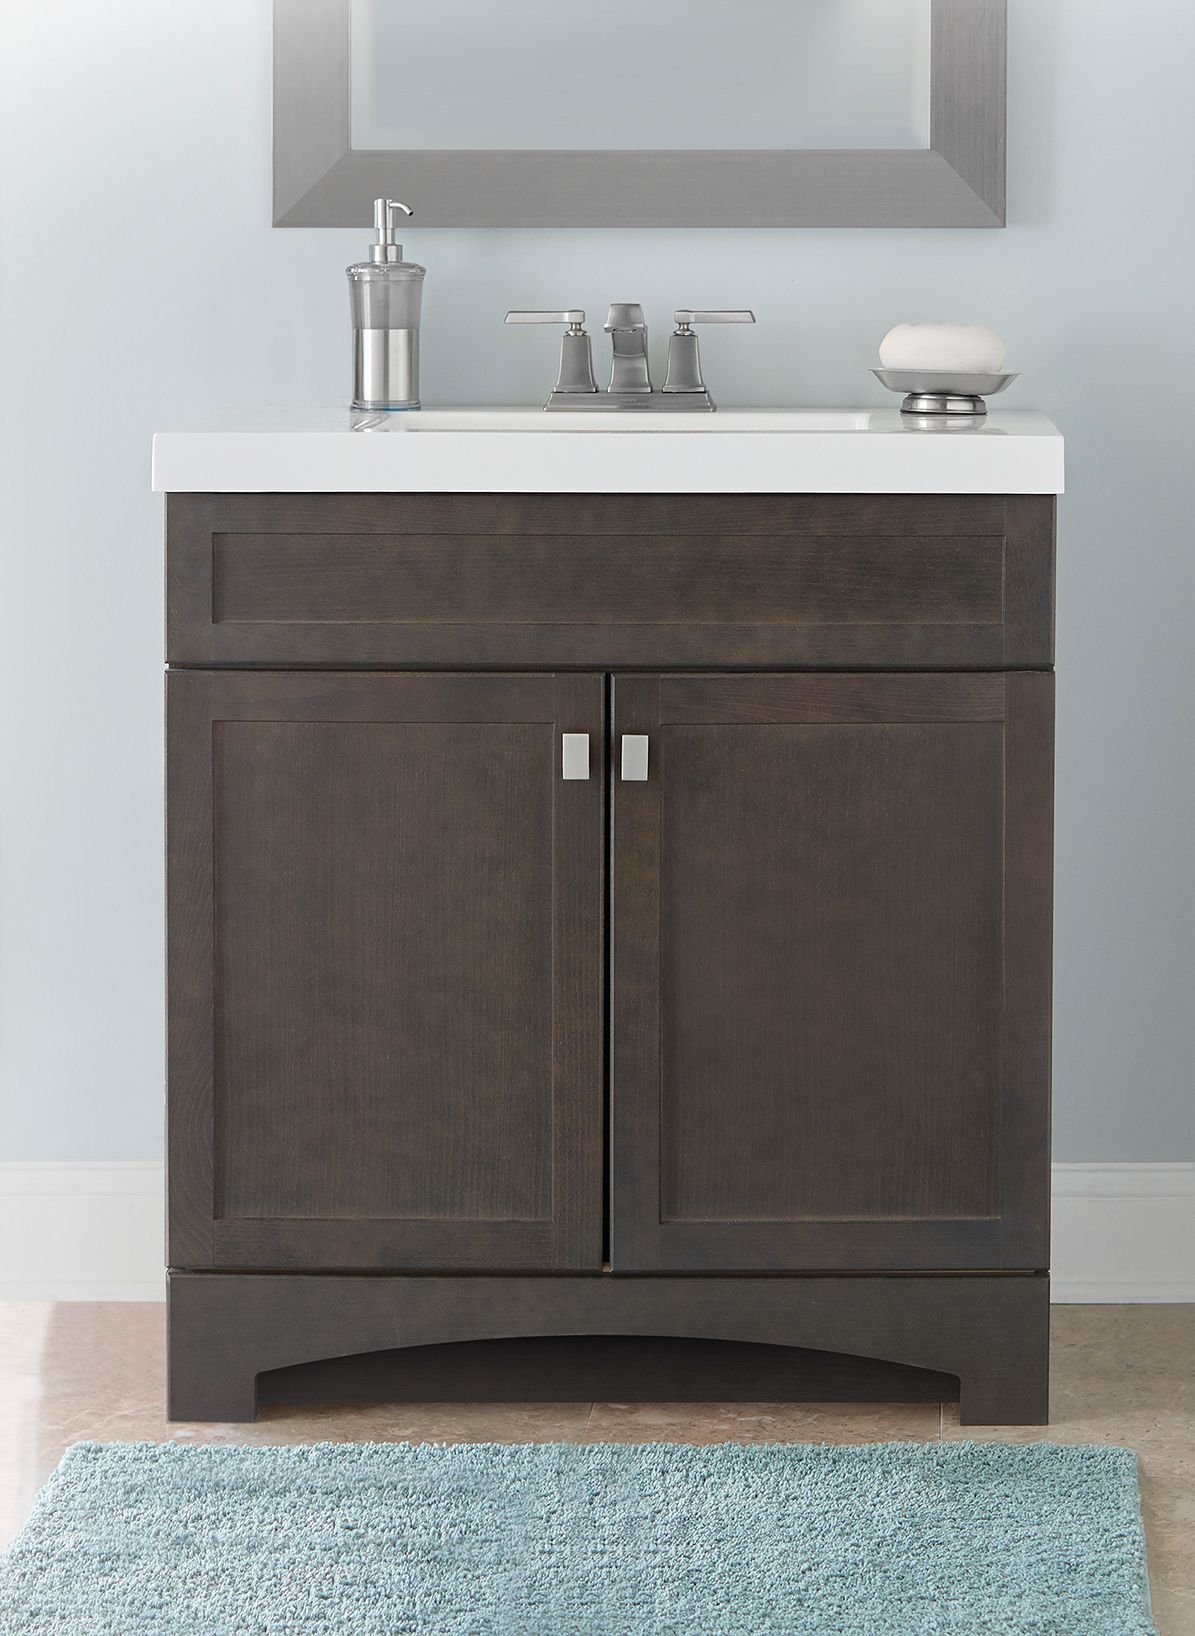 Style Selections Drayden 30 5 In Heirloom Single Sink Bathroom Vanity With White Cultured Marble Top Lowes Com Bathroom Vanity Bathroom Sink Vanity Single Sink Bathroom Vanity